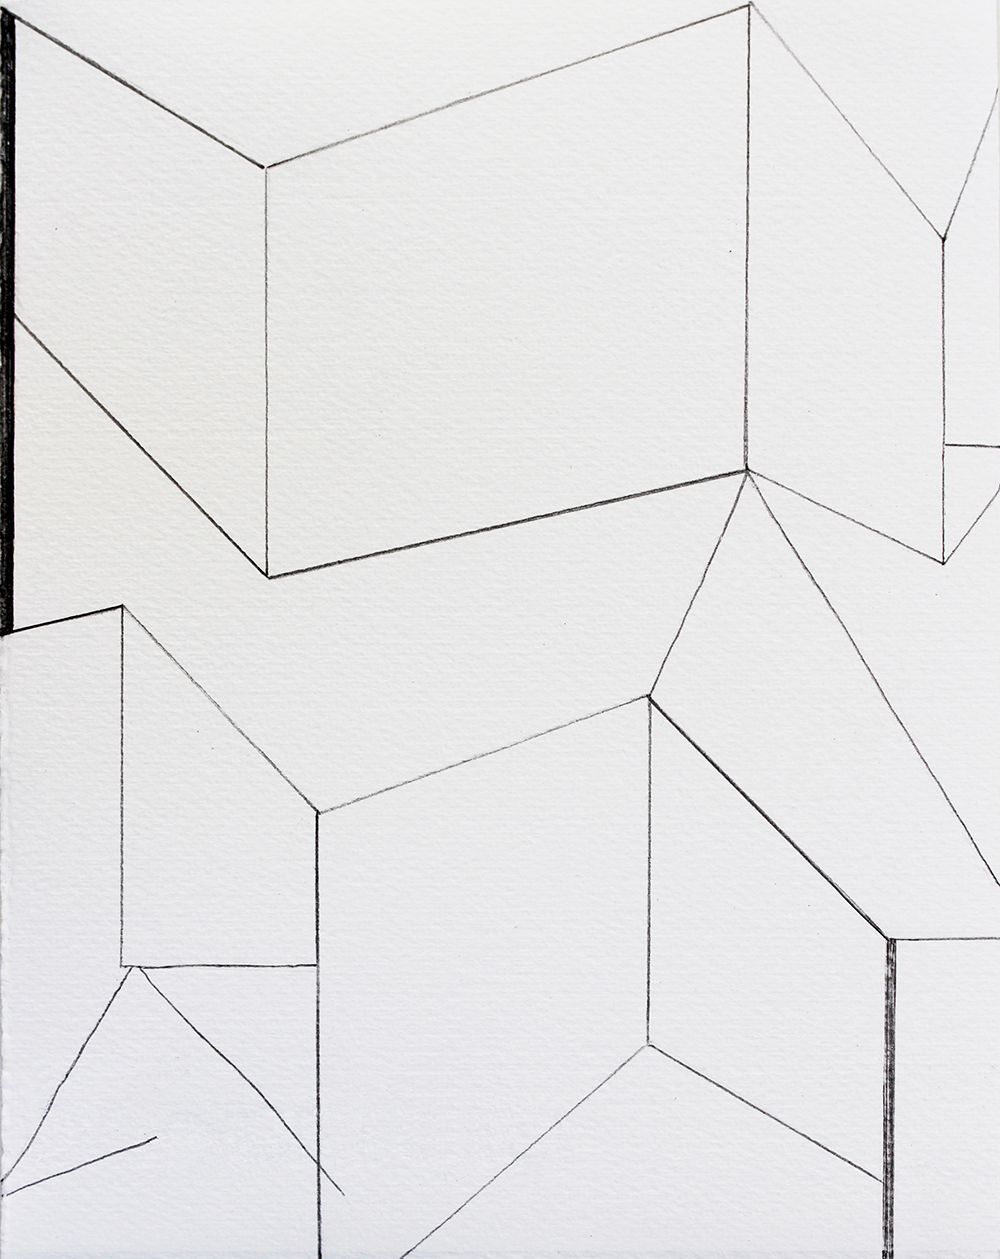 geometric-pencil drawing-on paper